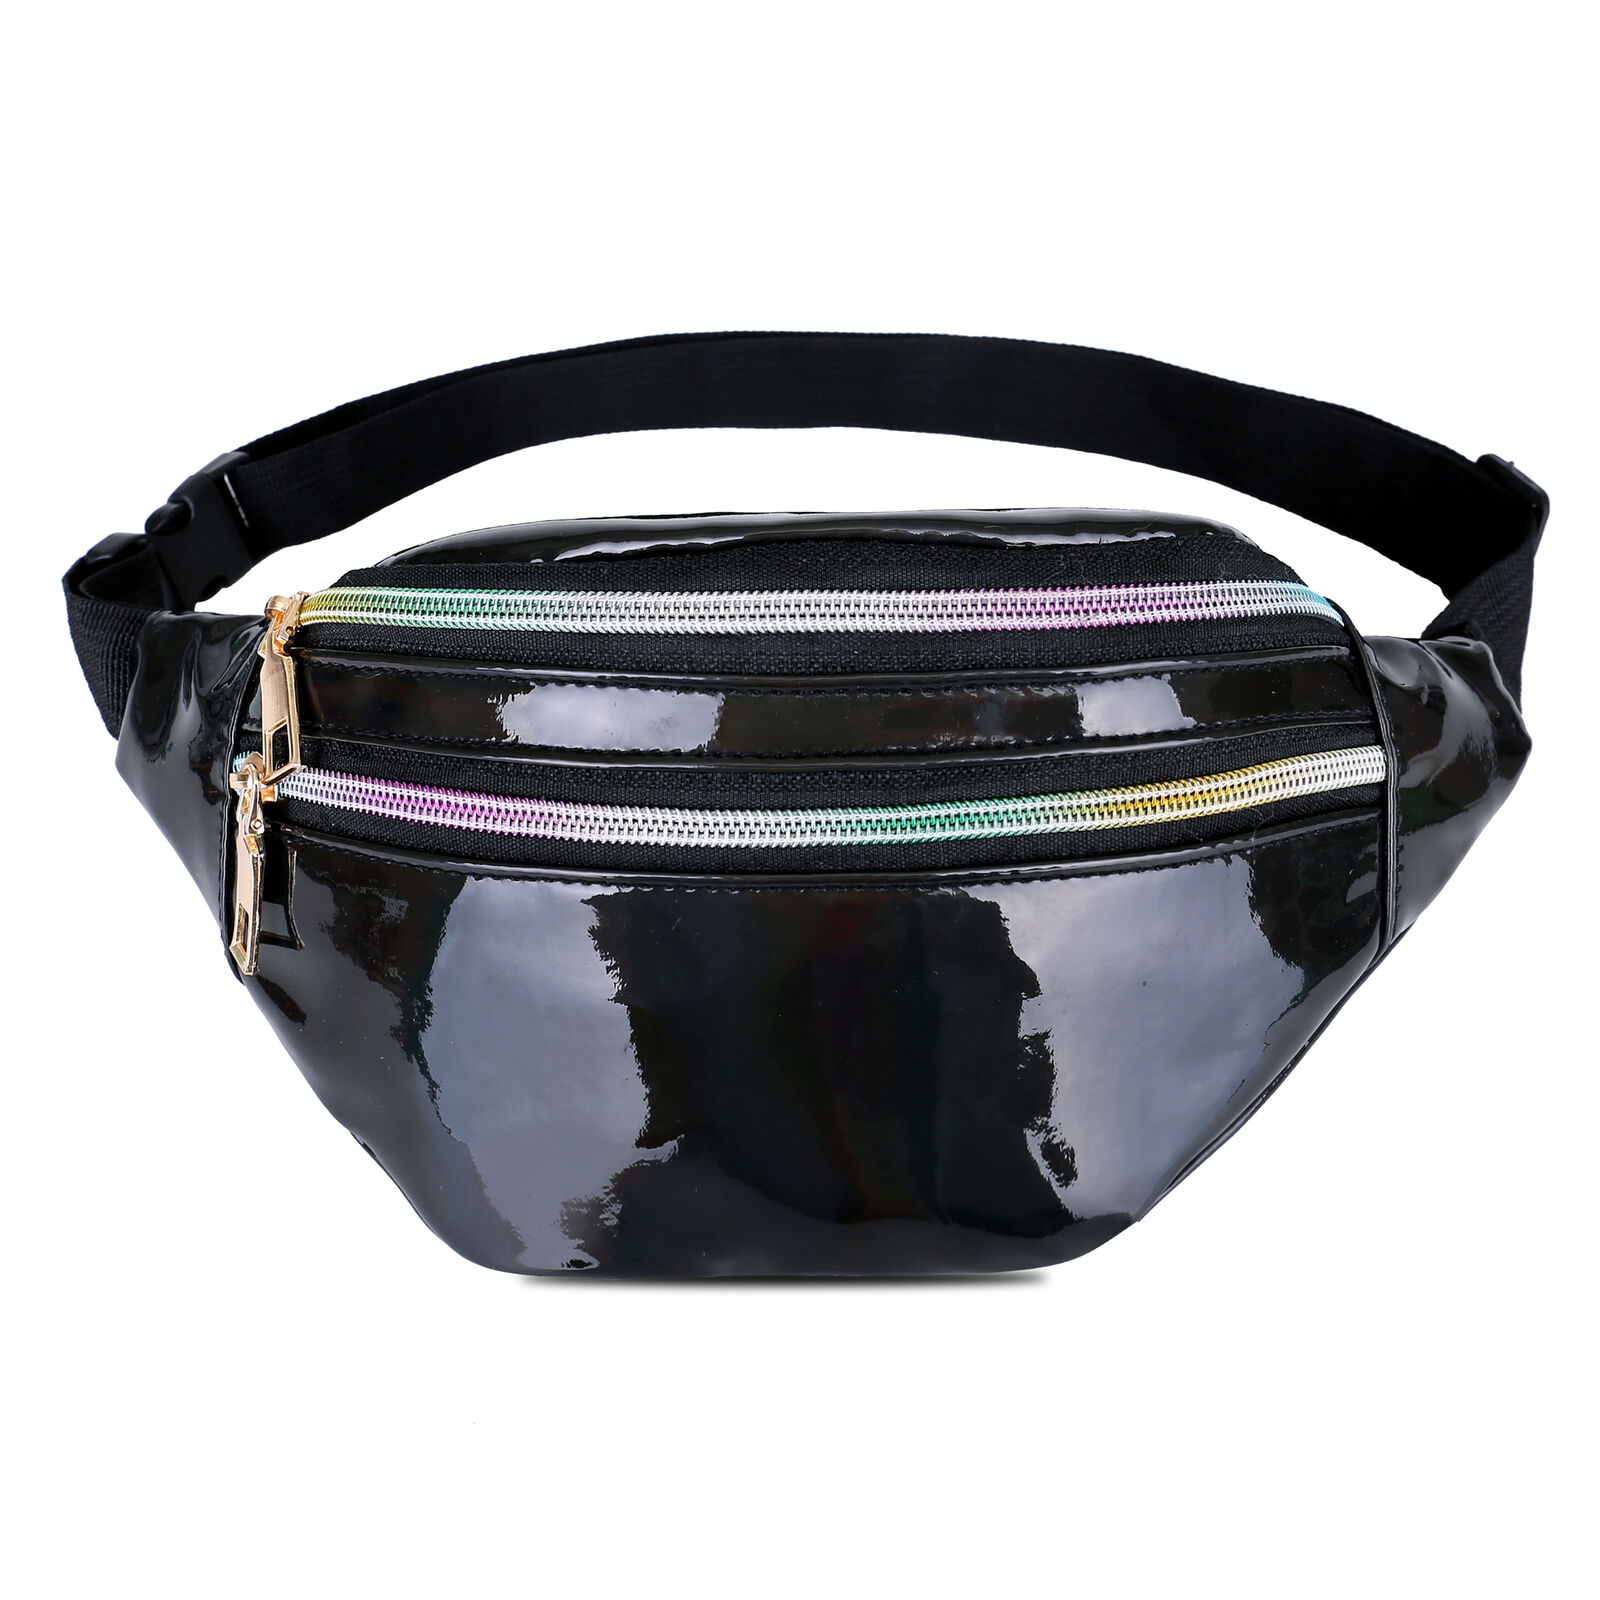 Fashion Hip Hop Waist Bag 2019 Women's Fanny Pack Portable Holographic Bright Color Travel Purse Chest Bag